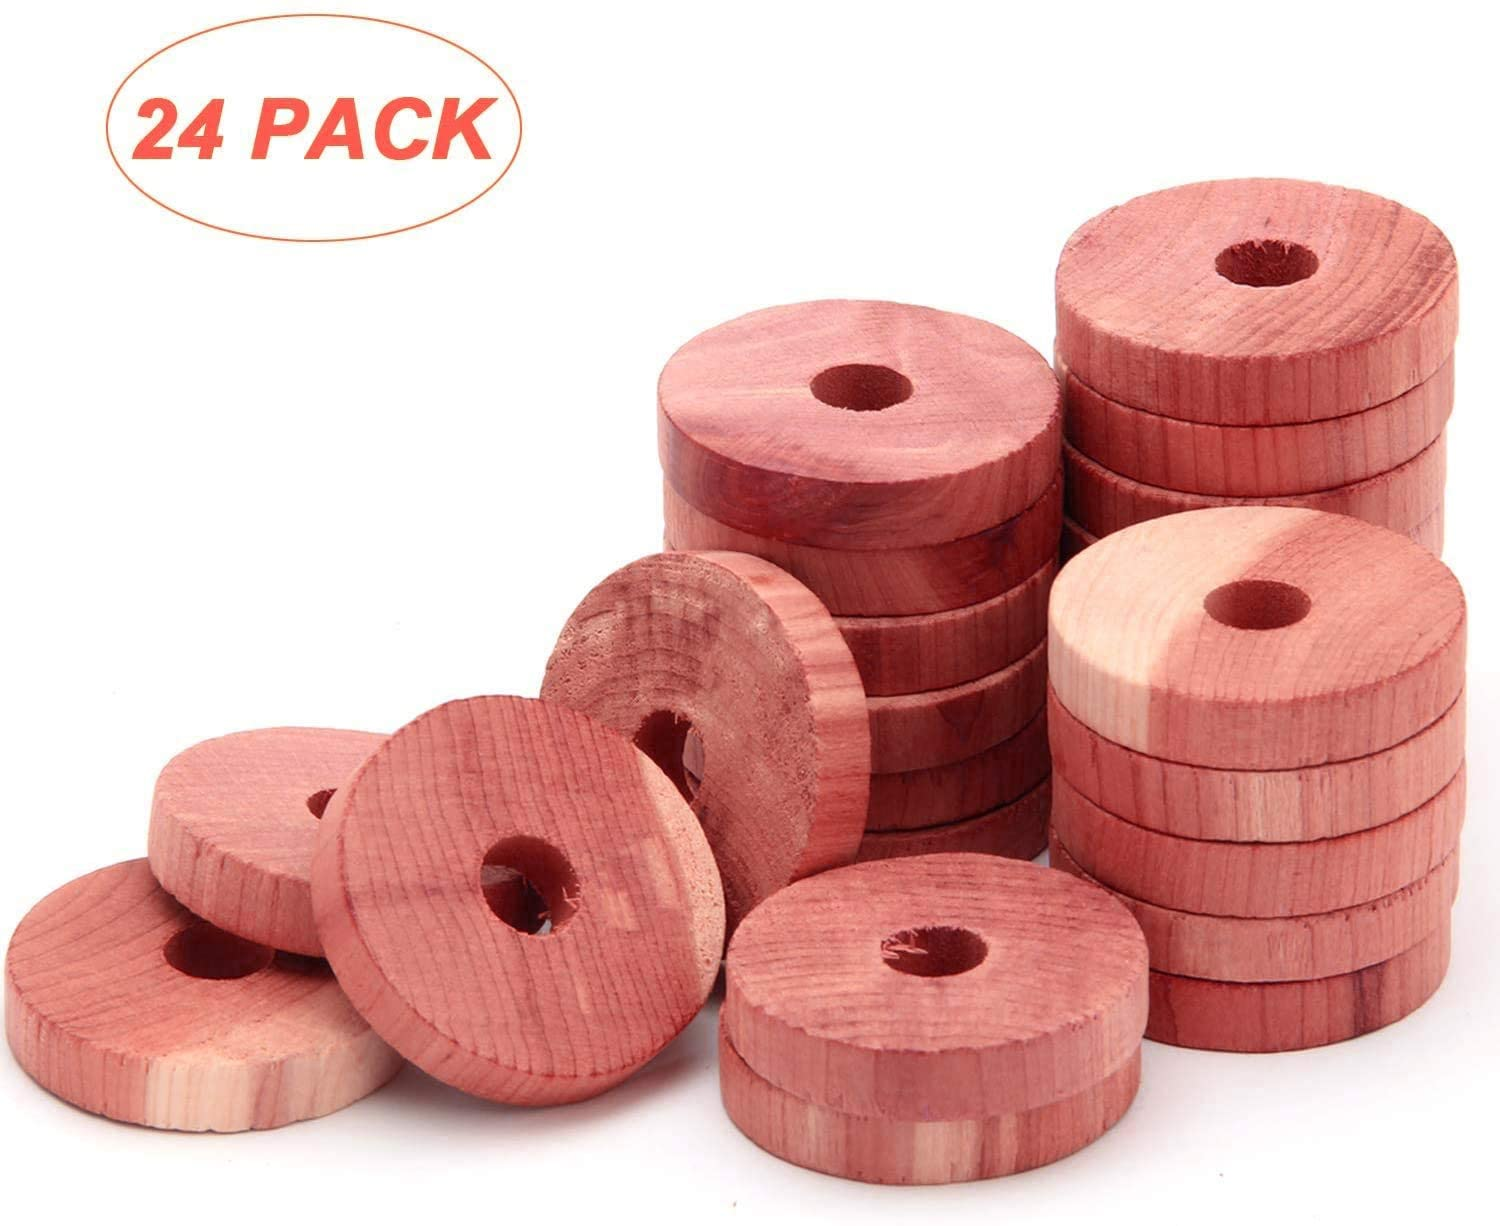 Coolrunner 24 Pack Cedar Fresh Red Cedar Wood Rings, Aromatic Cedar Blocks, 100% Natural Red Cedar Hangers for Closets and Drawers, Clothes Storage Protector